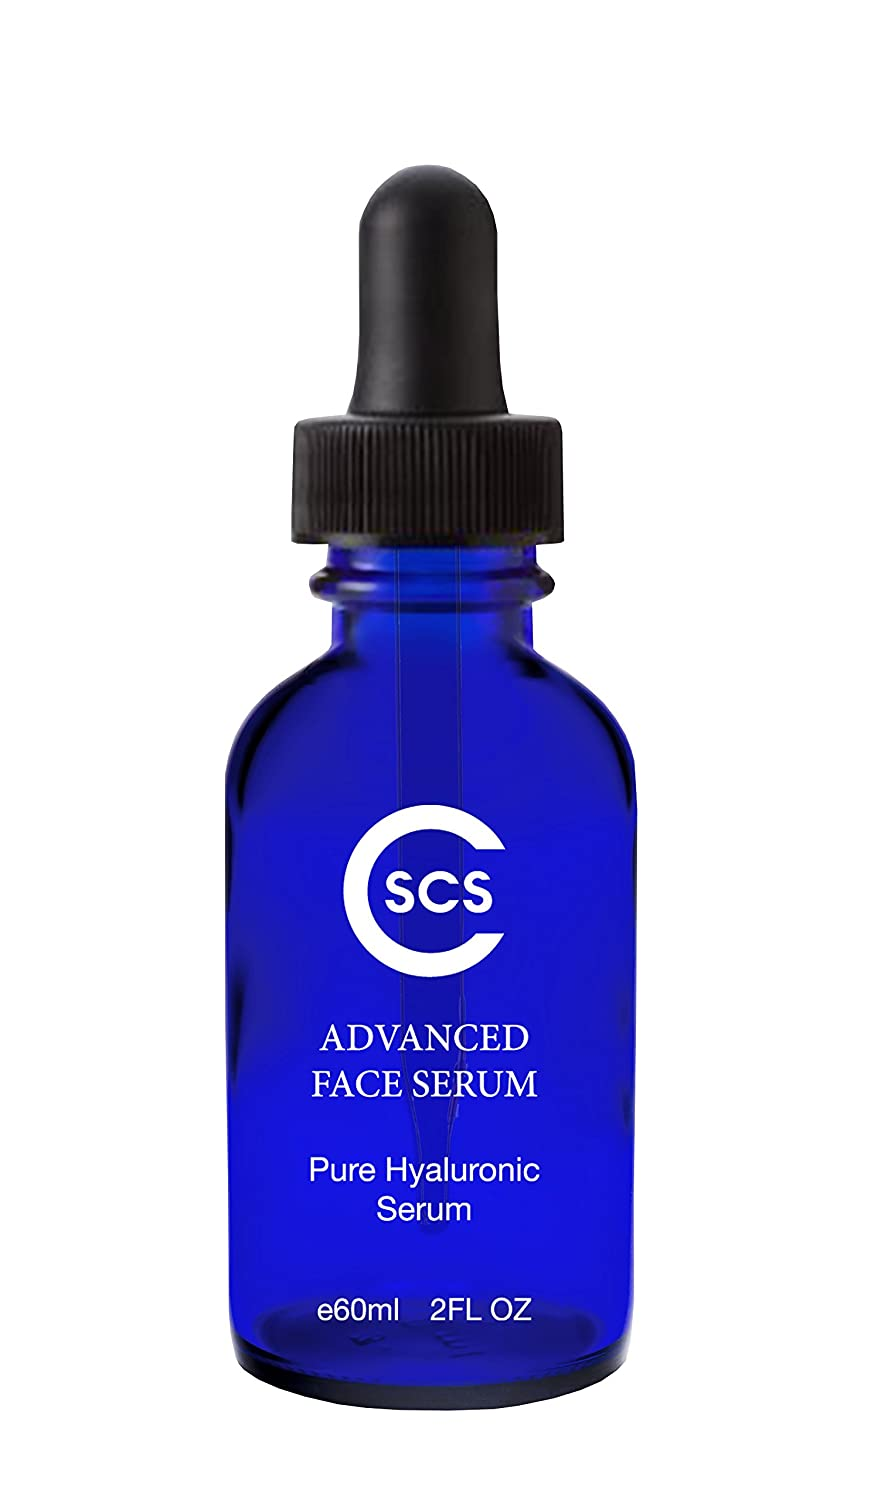 CSCS 100% Pure Hyaluronic Acid Serum - Reduce Fine Lines and Wrinkles - Moisturizing and Hydrating Serum - Non-Greasy, Vegan, Paraben Free, Professional Formula - 2 oz